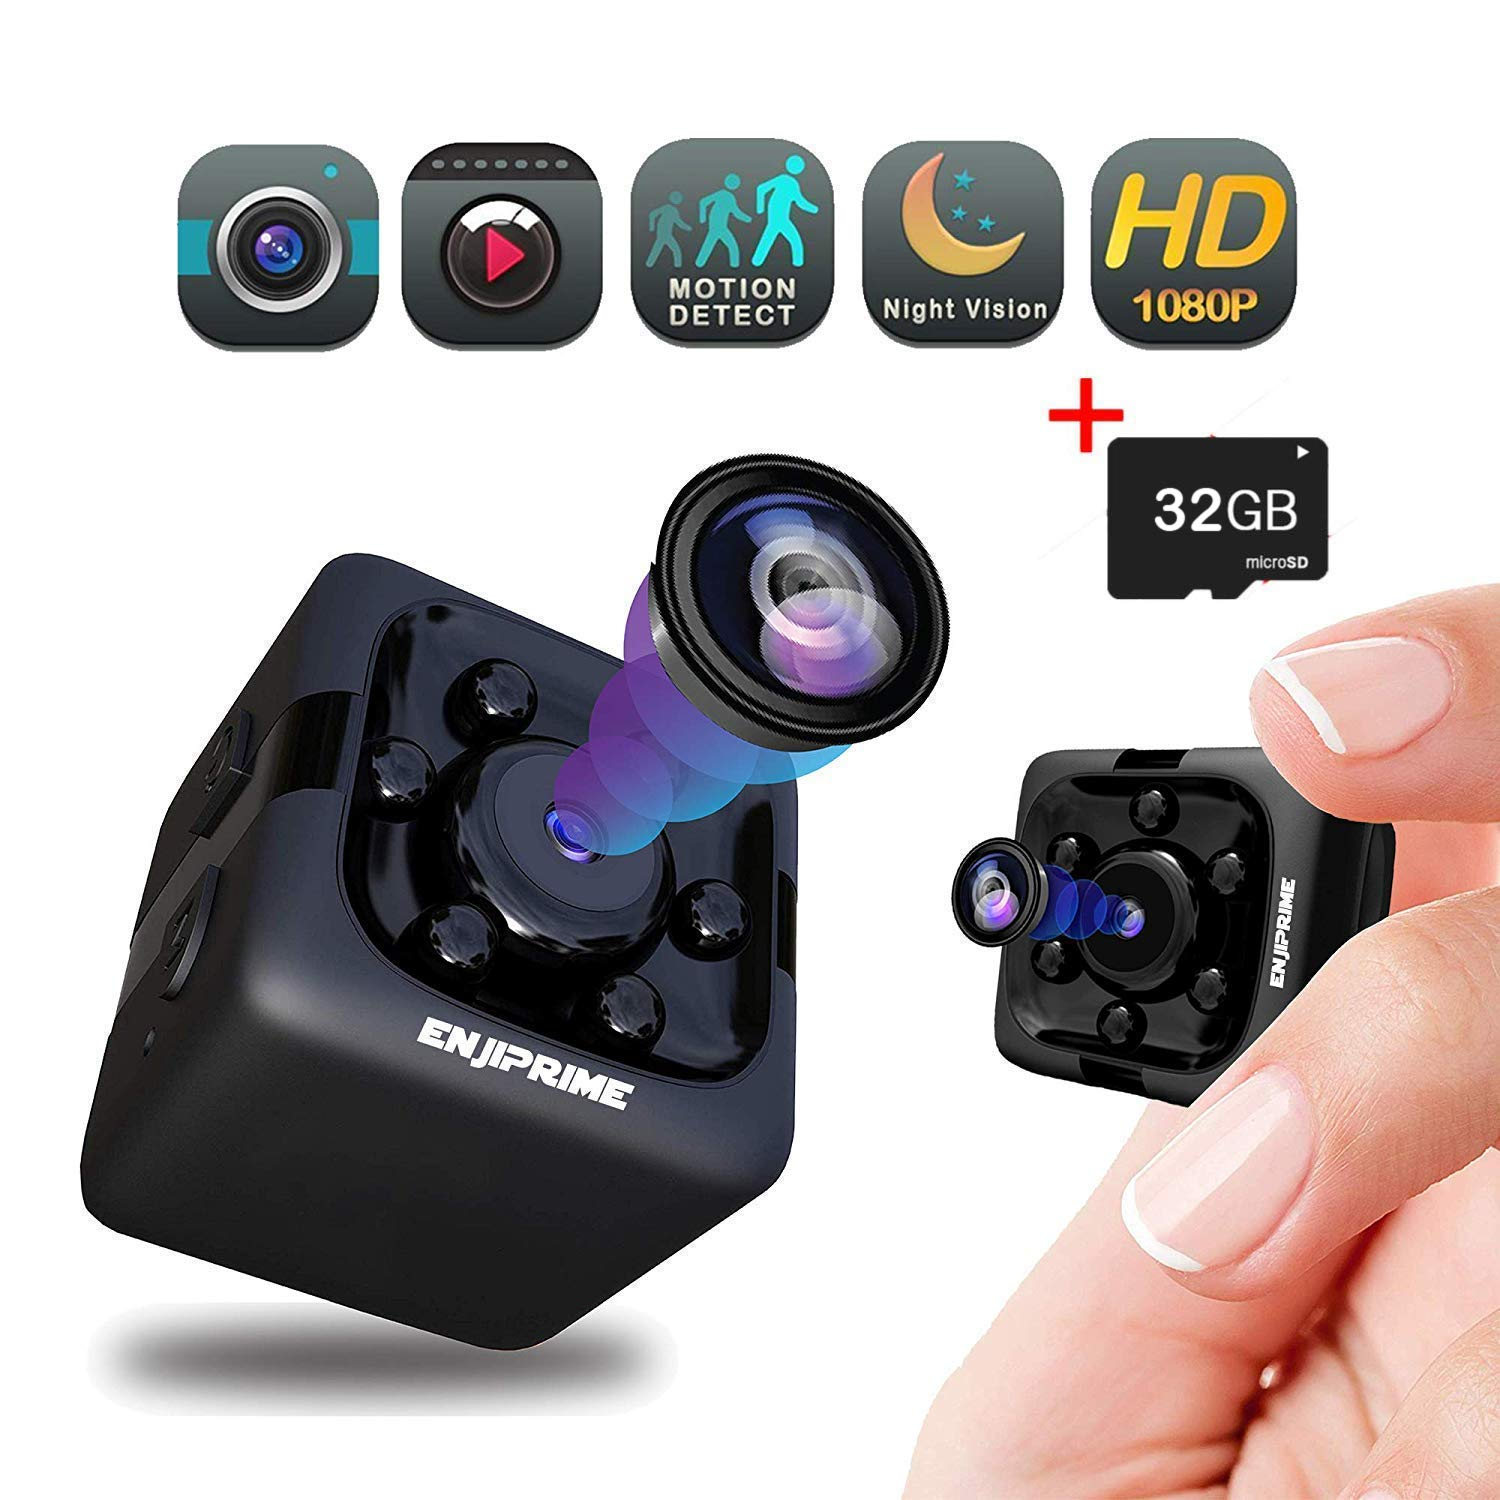 Spy Hidden Camera Nanny Cam - Mini Wireless Cop Cam Action Cameras for Indoor or Outdoor, Home Office or Car Video Recorder with 1080p HD Recording and Night Vision (with 32 GB SD Card) by Enji Prime